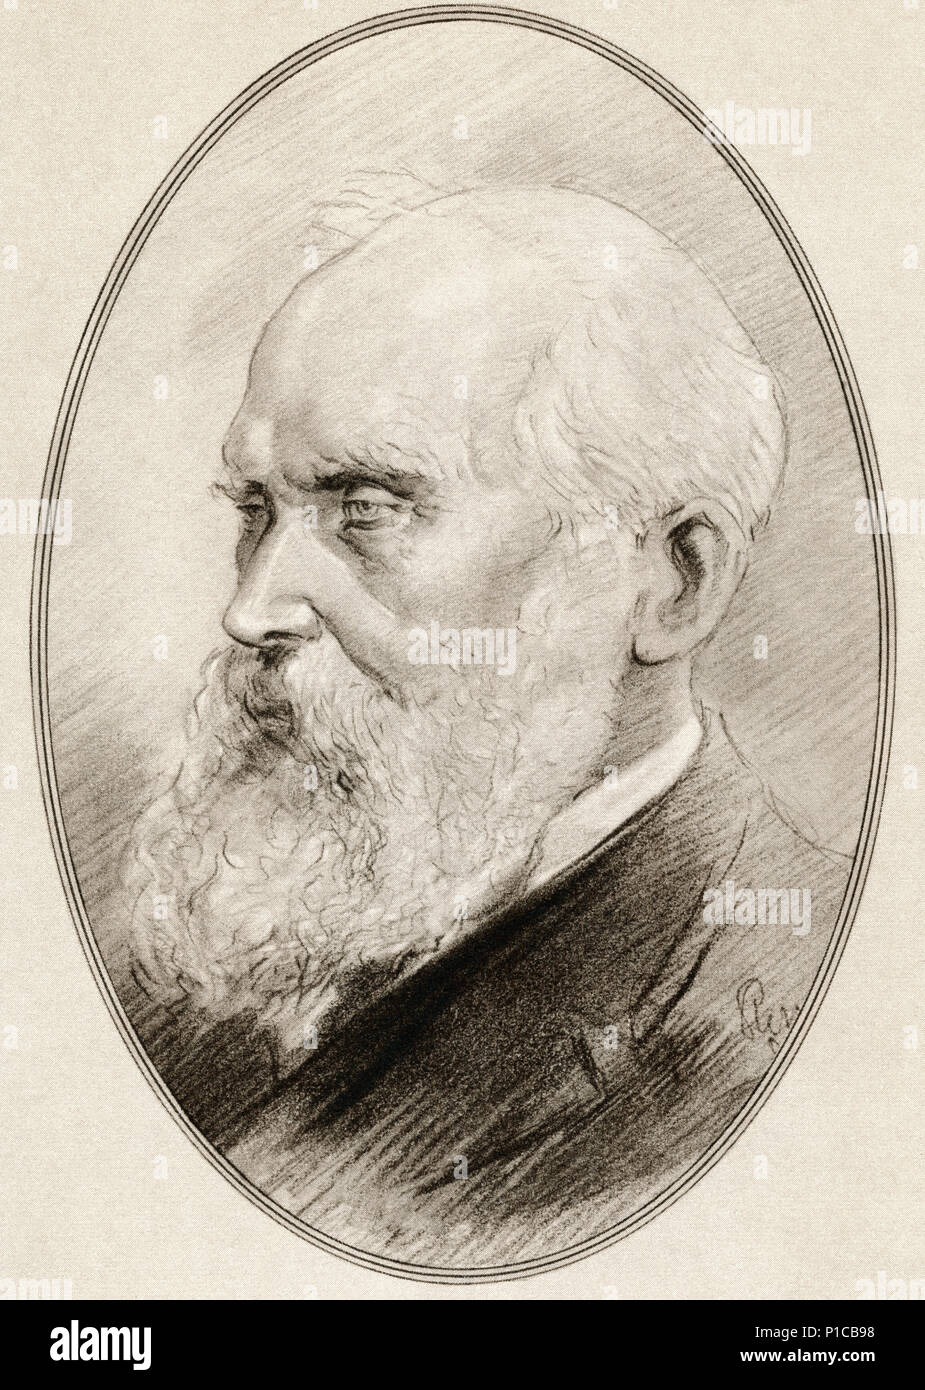 William Thomson, 1st Baron Kelvin, 1824 – 1907.  Scots-Irish mathematical physicist and engineer.  Illustration by Gordon Ross, American artist and illustrator (1873-1946), from Living Biographies of Great Scientists. - Stock Image